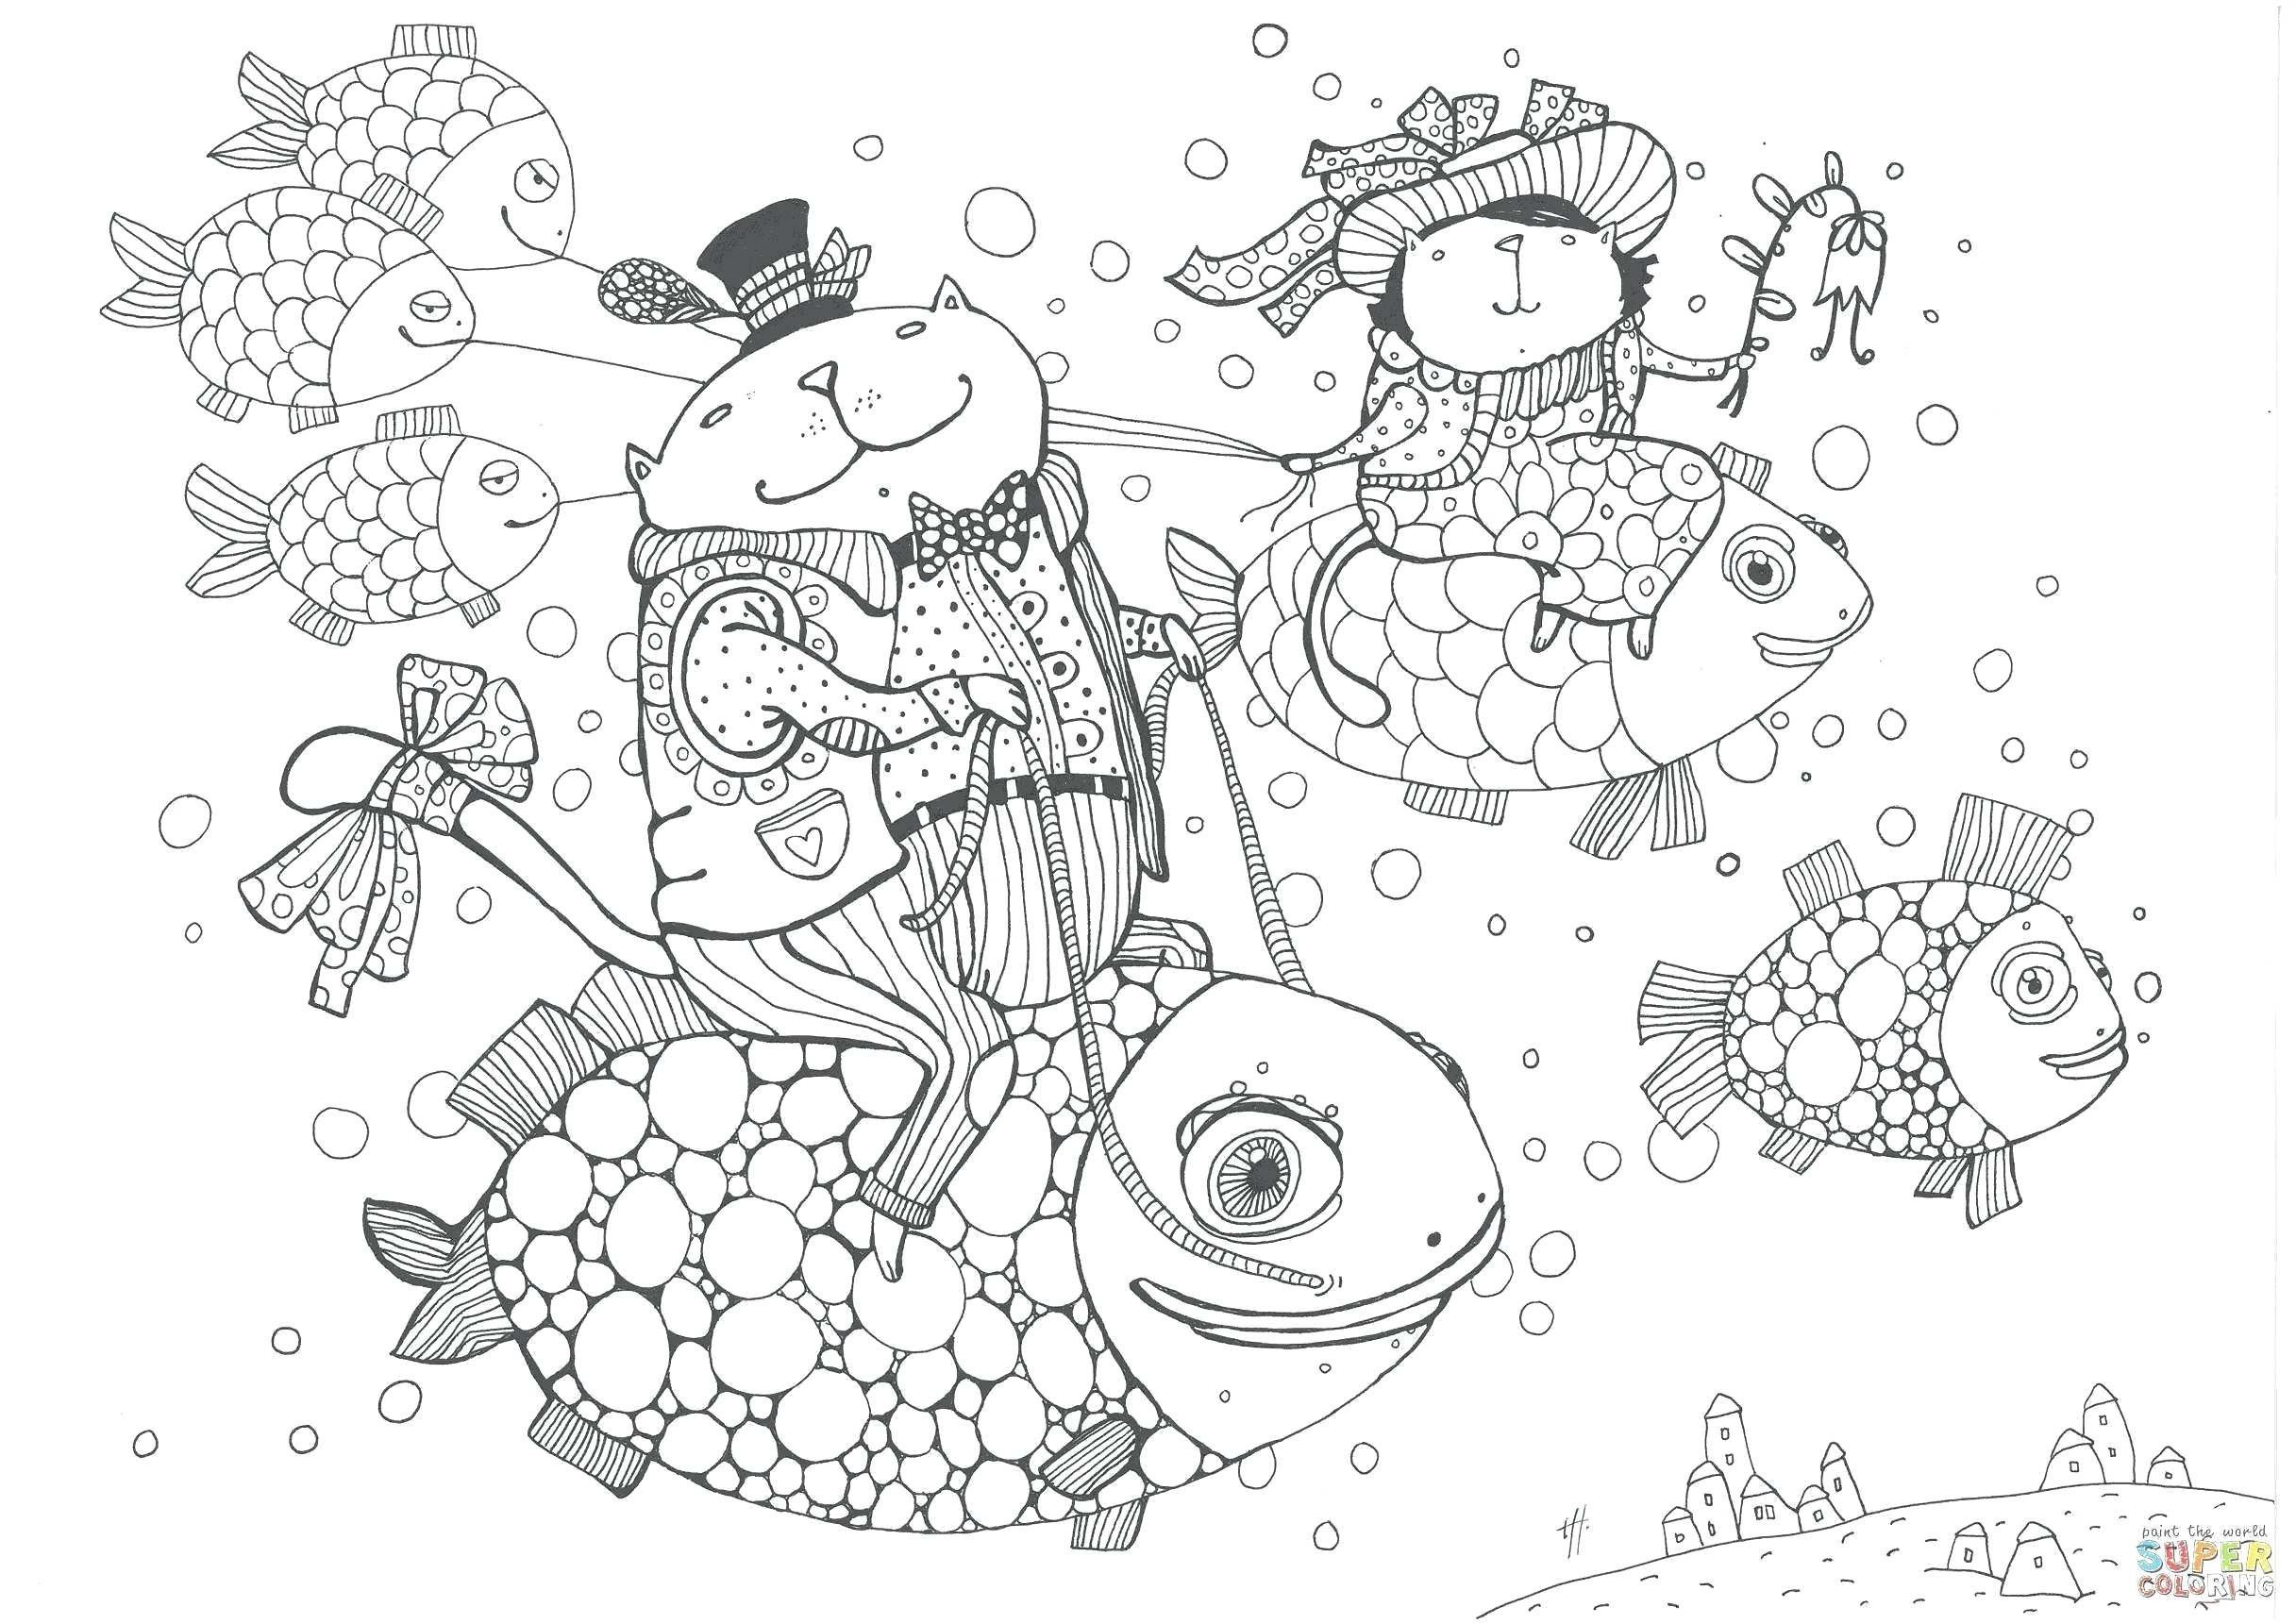 Ausmalbilder Weihnachten Hello Kitty Genial Hello Kitty Printable Coloring Pages Elegant New Kitty Stock